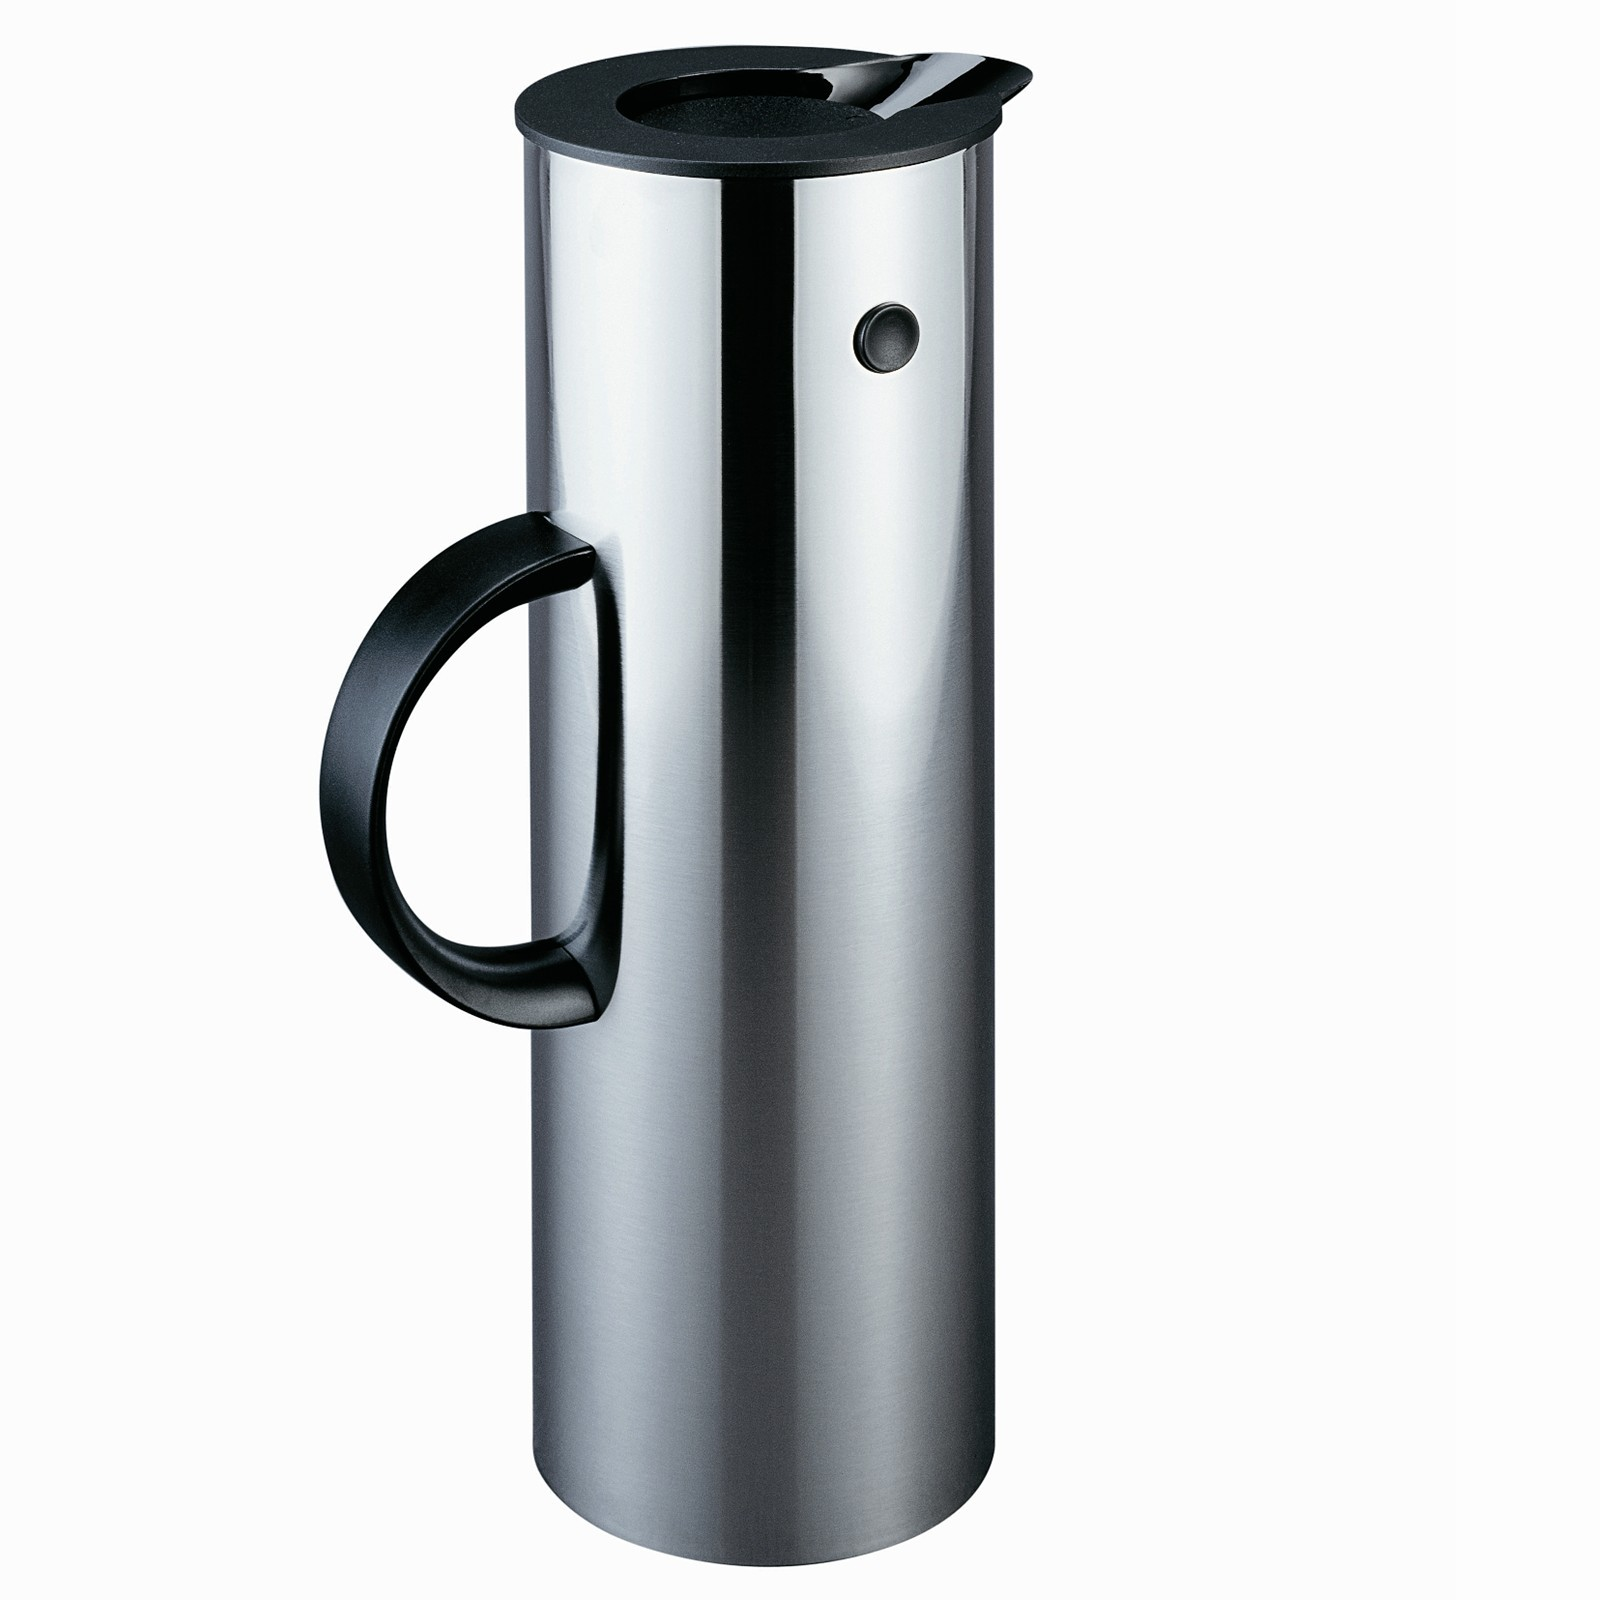 Thermosflasche 1l Stelton Isolierkanne Thermoskanne 1 L Stahl